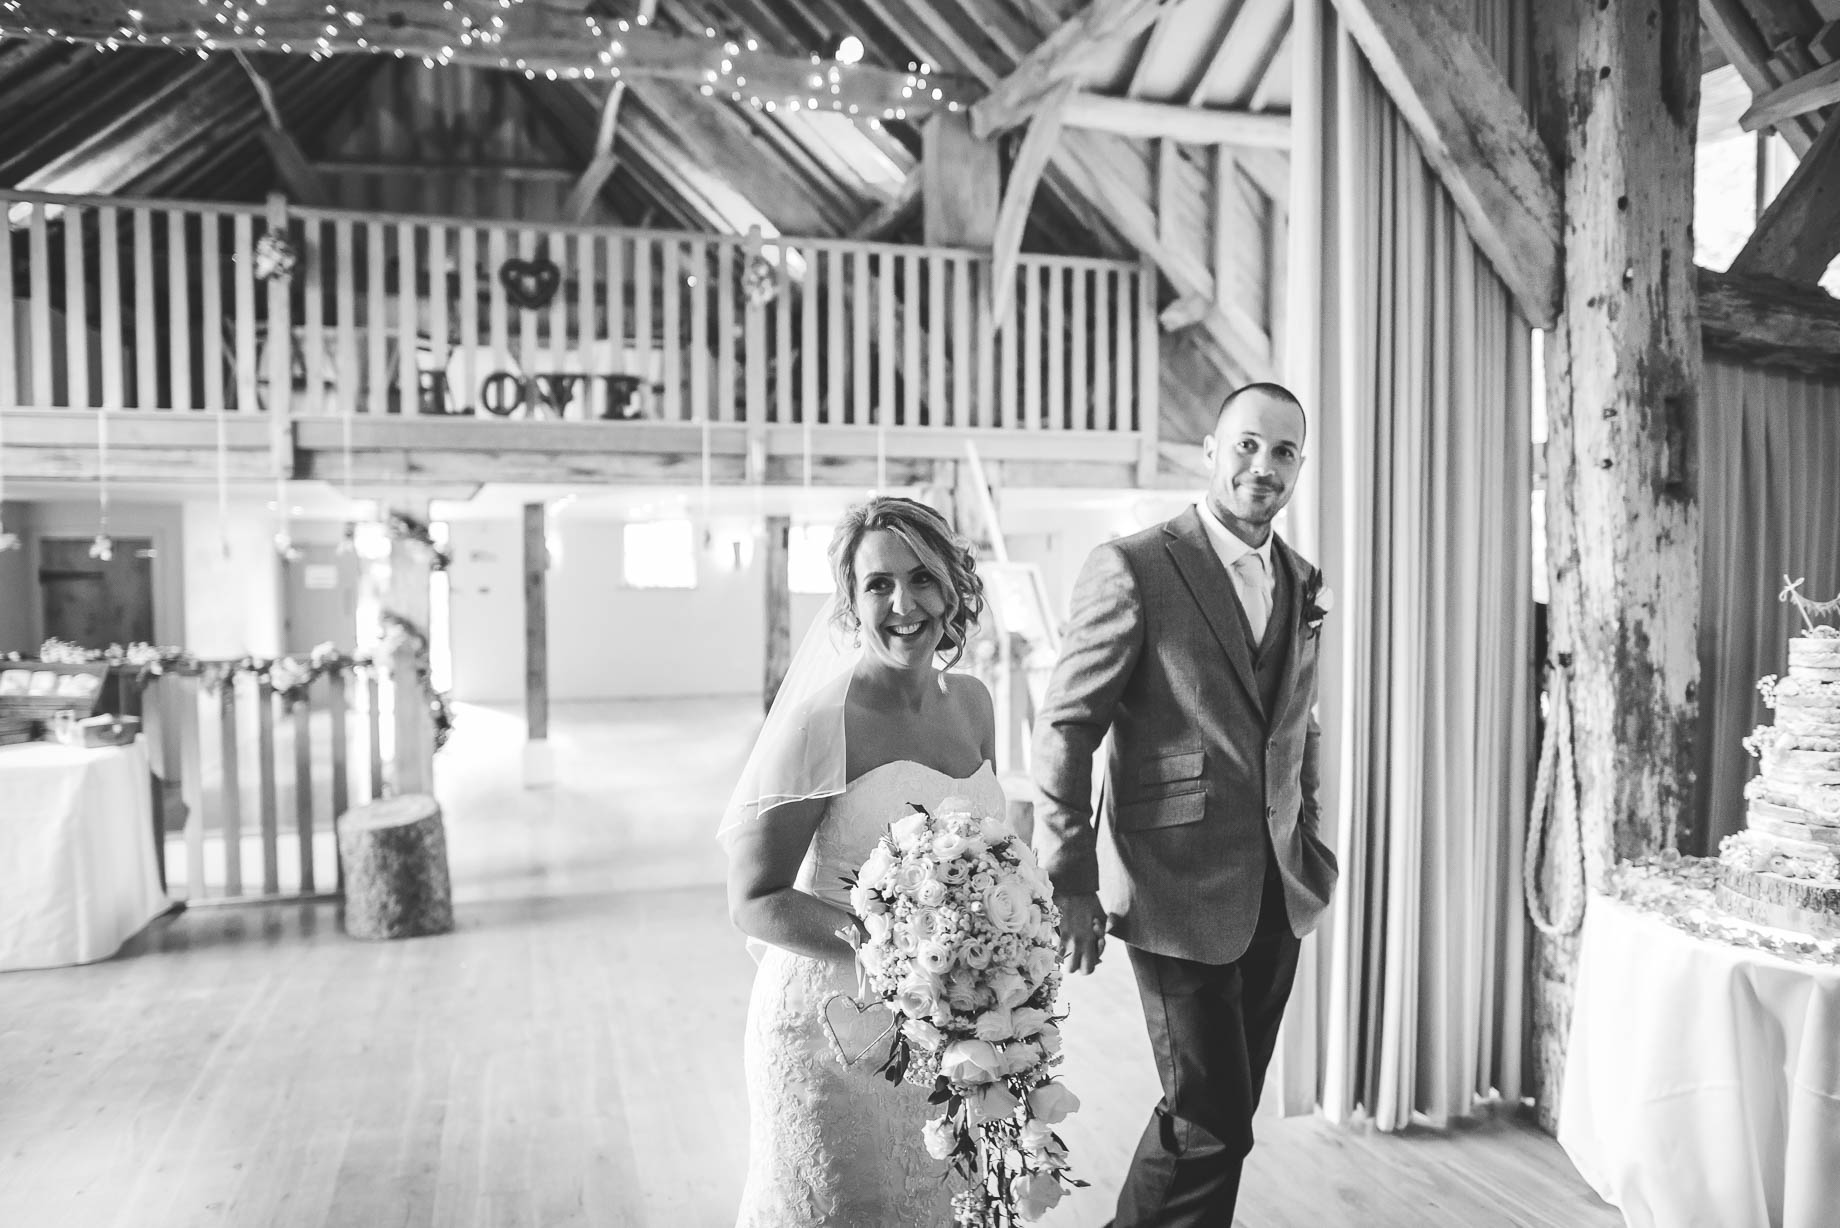 Bury Court Barn wedding photography - Guy Collier - Kate and Russ (124 of 187)